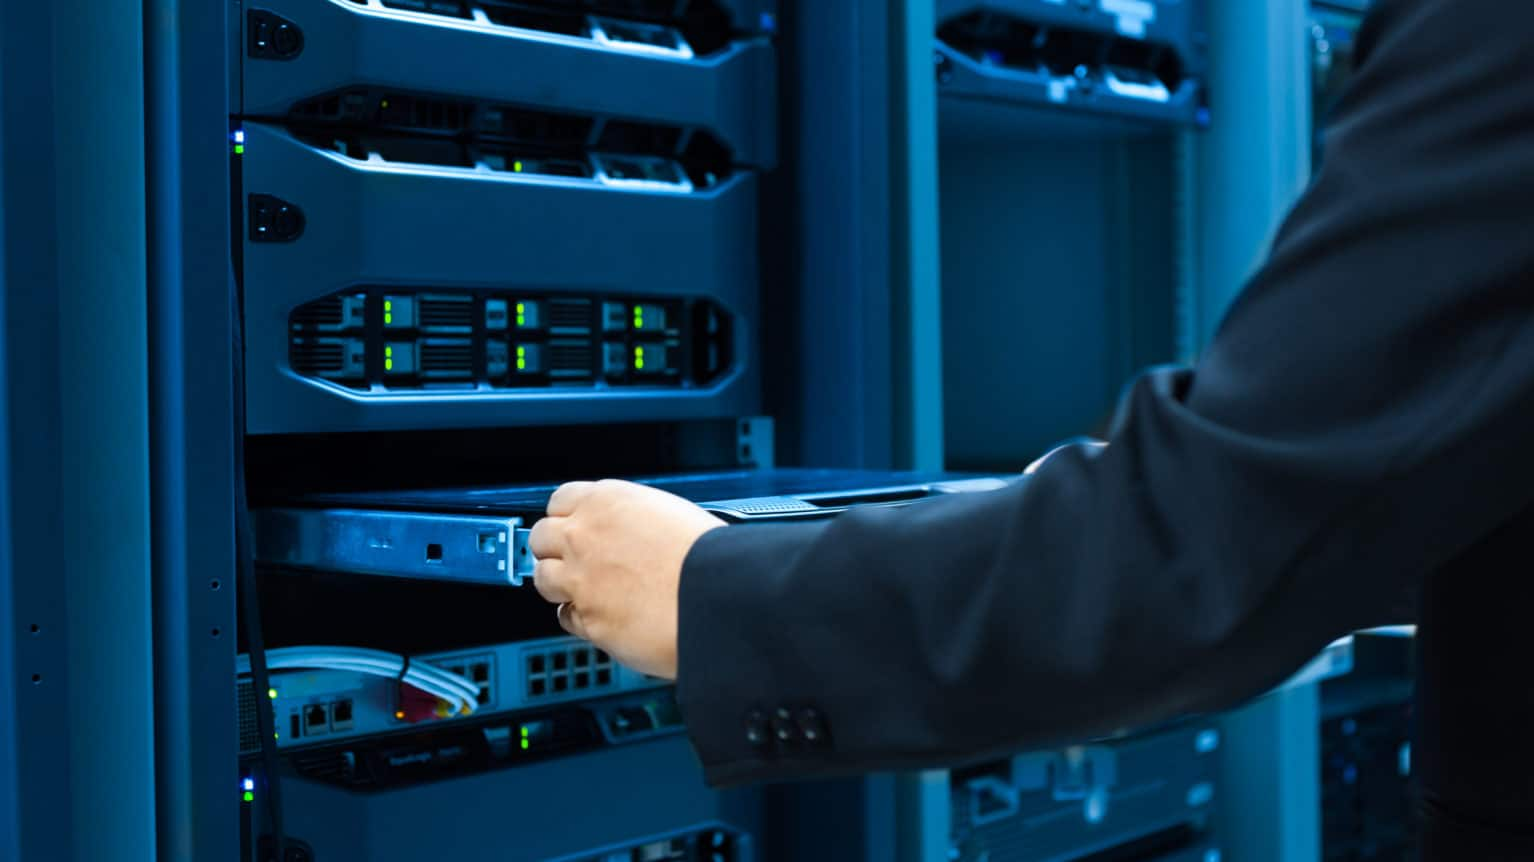 Man fixes server network in data center room